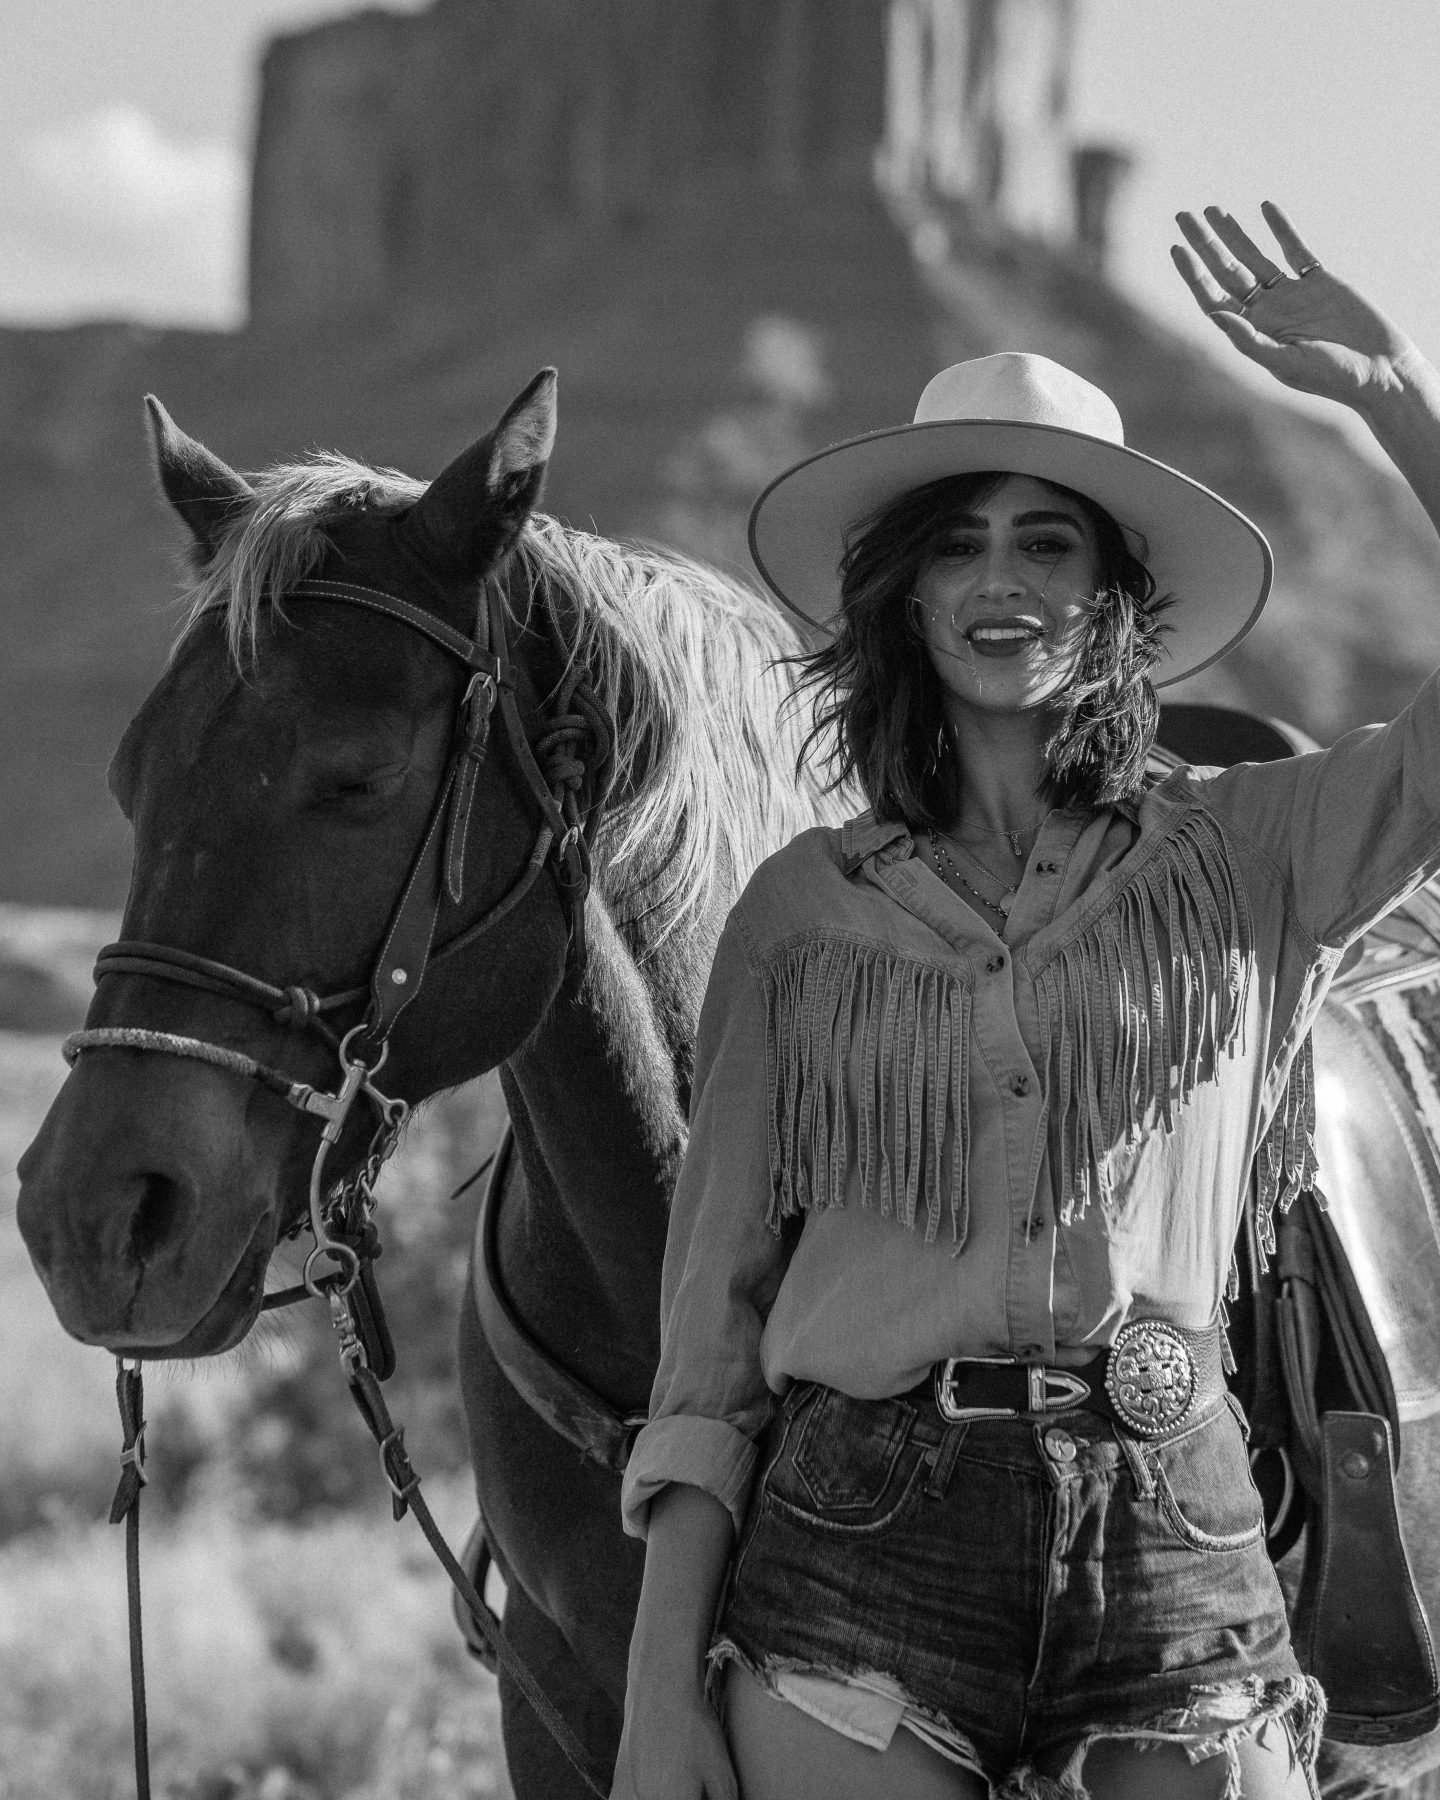 Lisa Homsy poses with a horse in Moab Utah